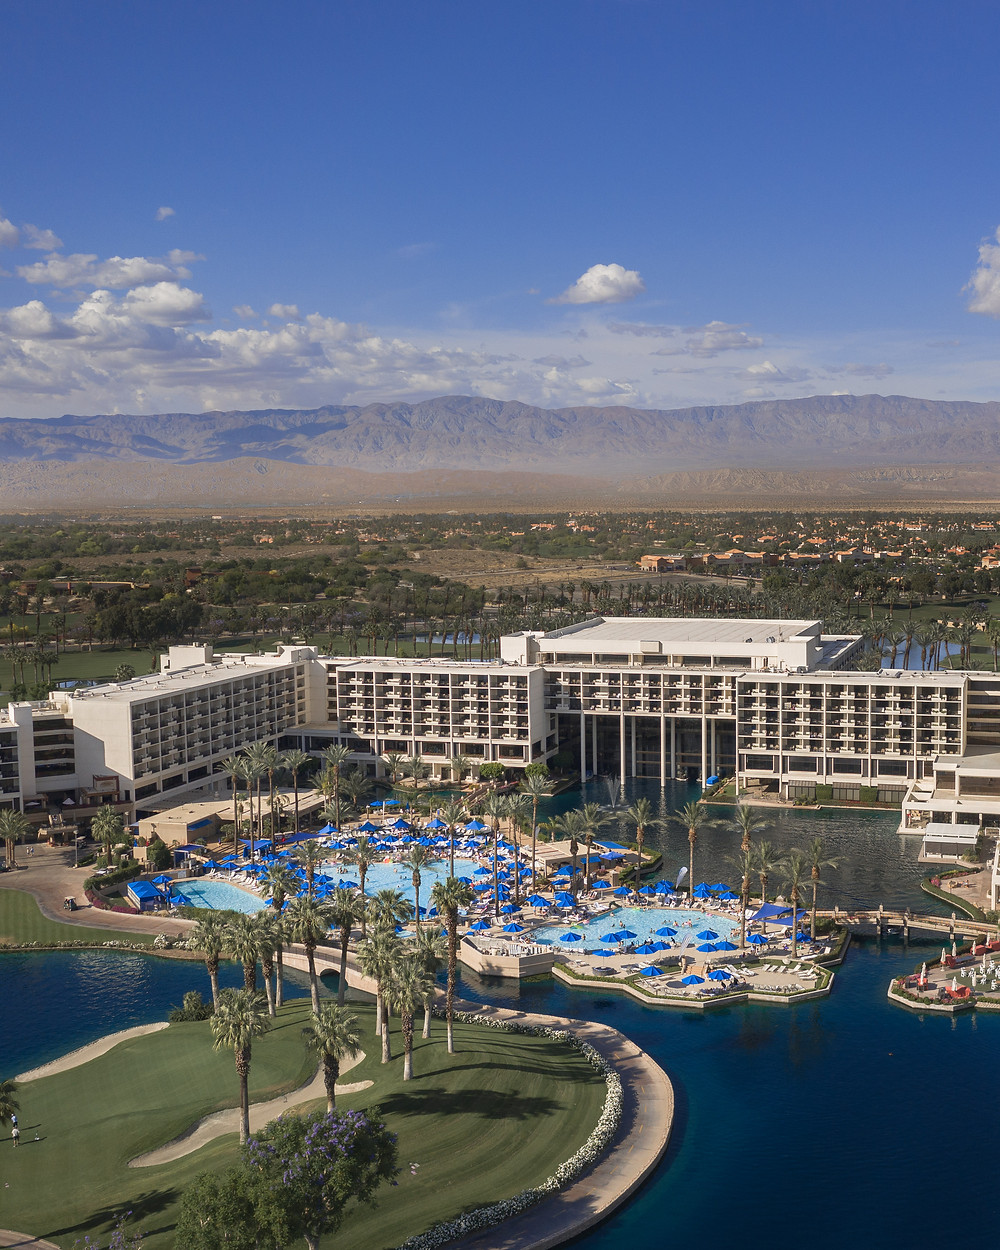 Aerial view of the pool and golf course at the JW Marriott Desert Springs in Palm Springs California